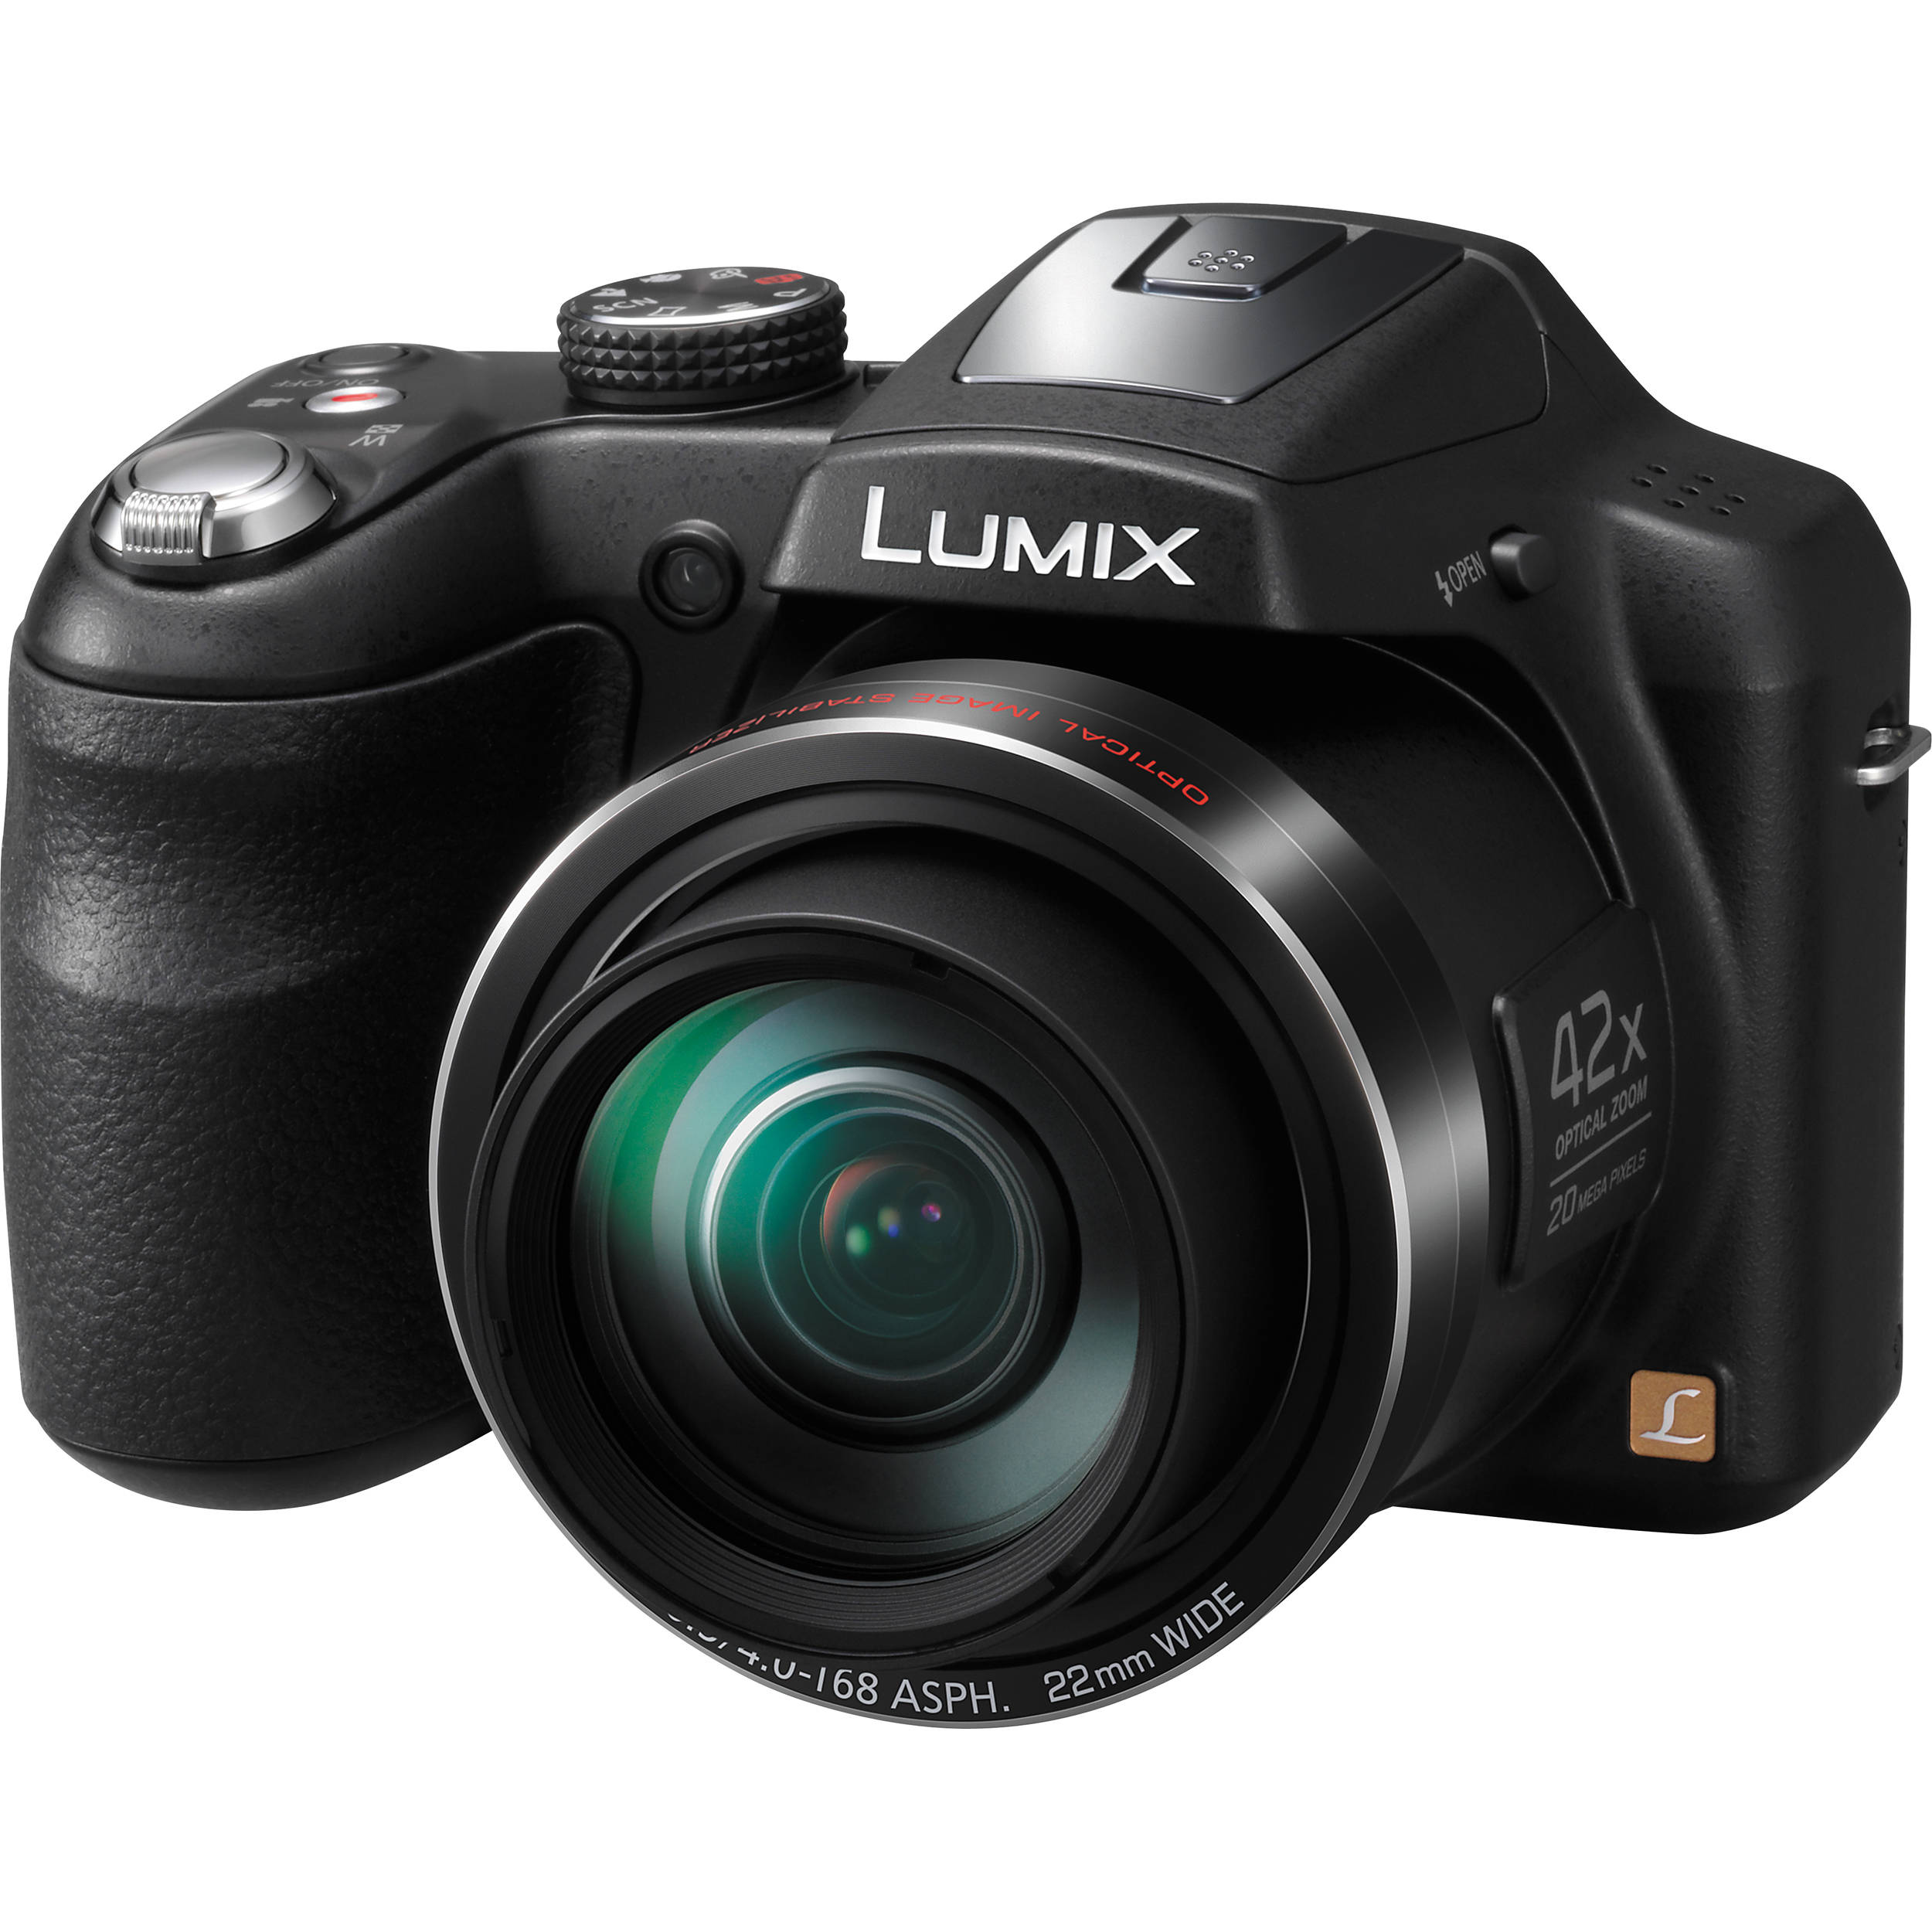 Panasonic LUMIX DMC-LZ40 Digital Camera (Black) DMC-LZ40K B&H